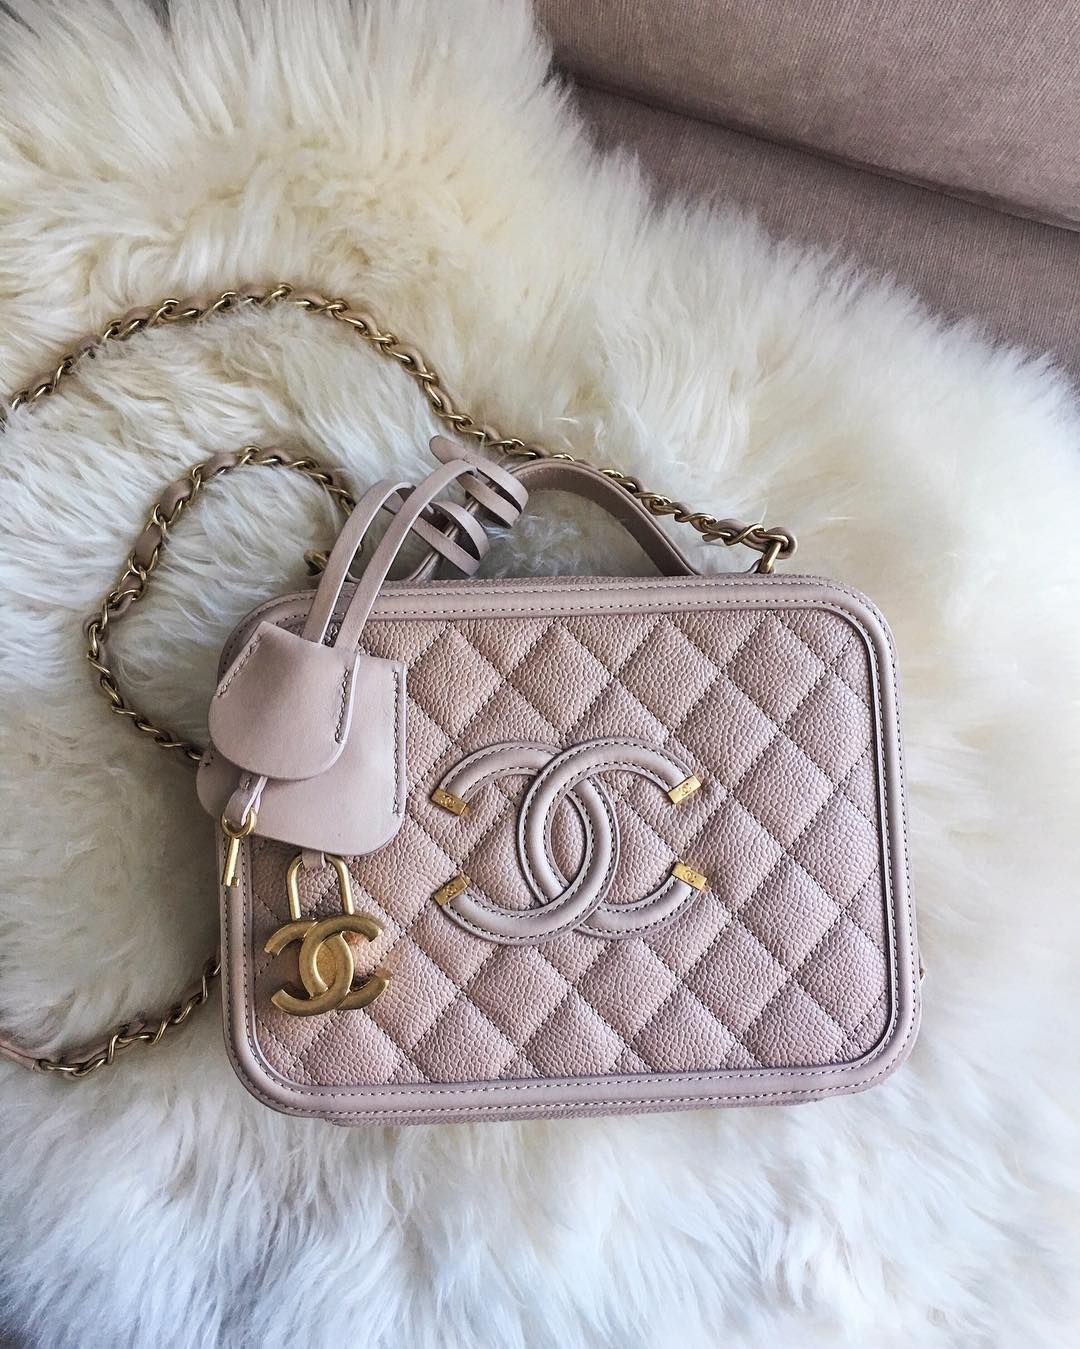 ba6c6dc1cdfa8c Introducing the Chanel CC Filigree Bag. The CC Filigree comes in two  styles, Flap Bag and Vanity Case. This is part of Chanel's Spring/Summer  2016 Collecti